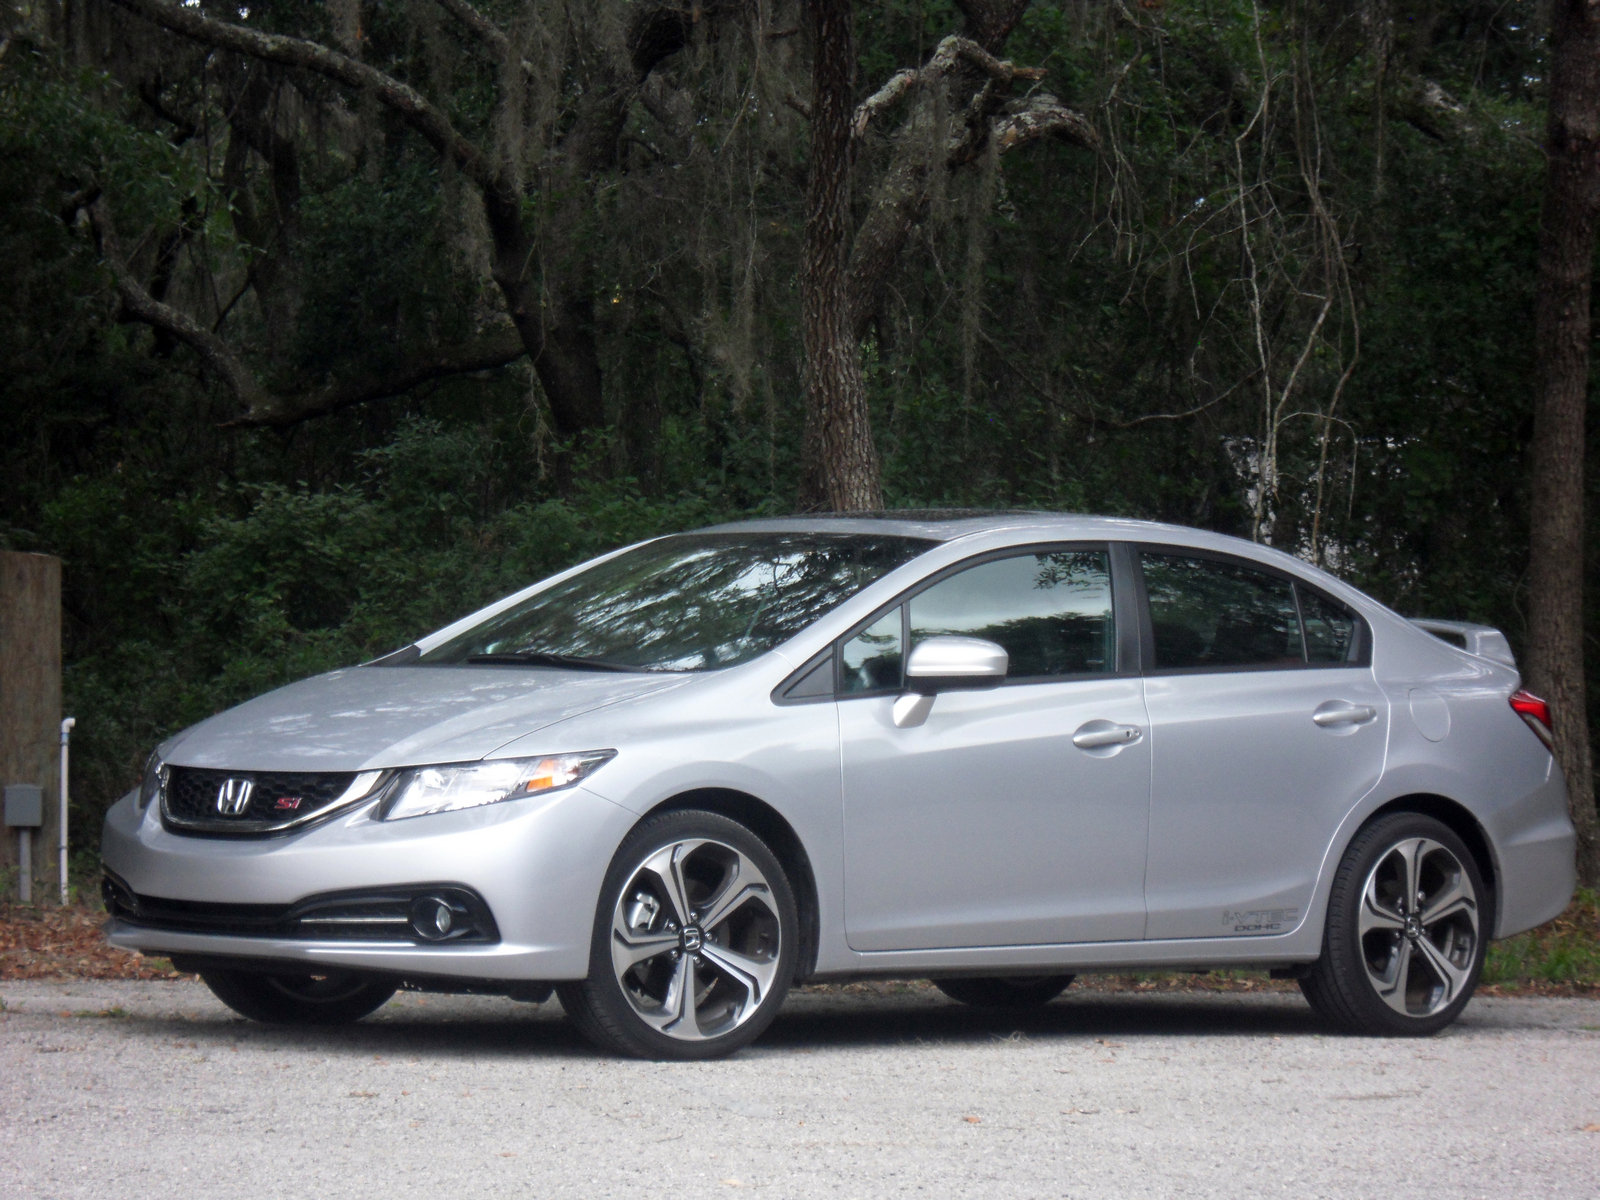 2014 honda civic si sedan driven review top speed. Black Bedroom Furniture Sets. Home Design Ideas